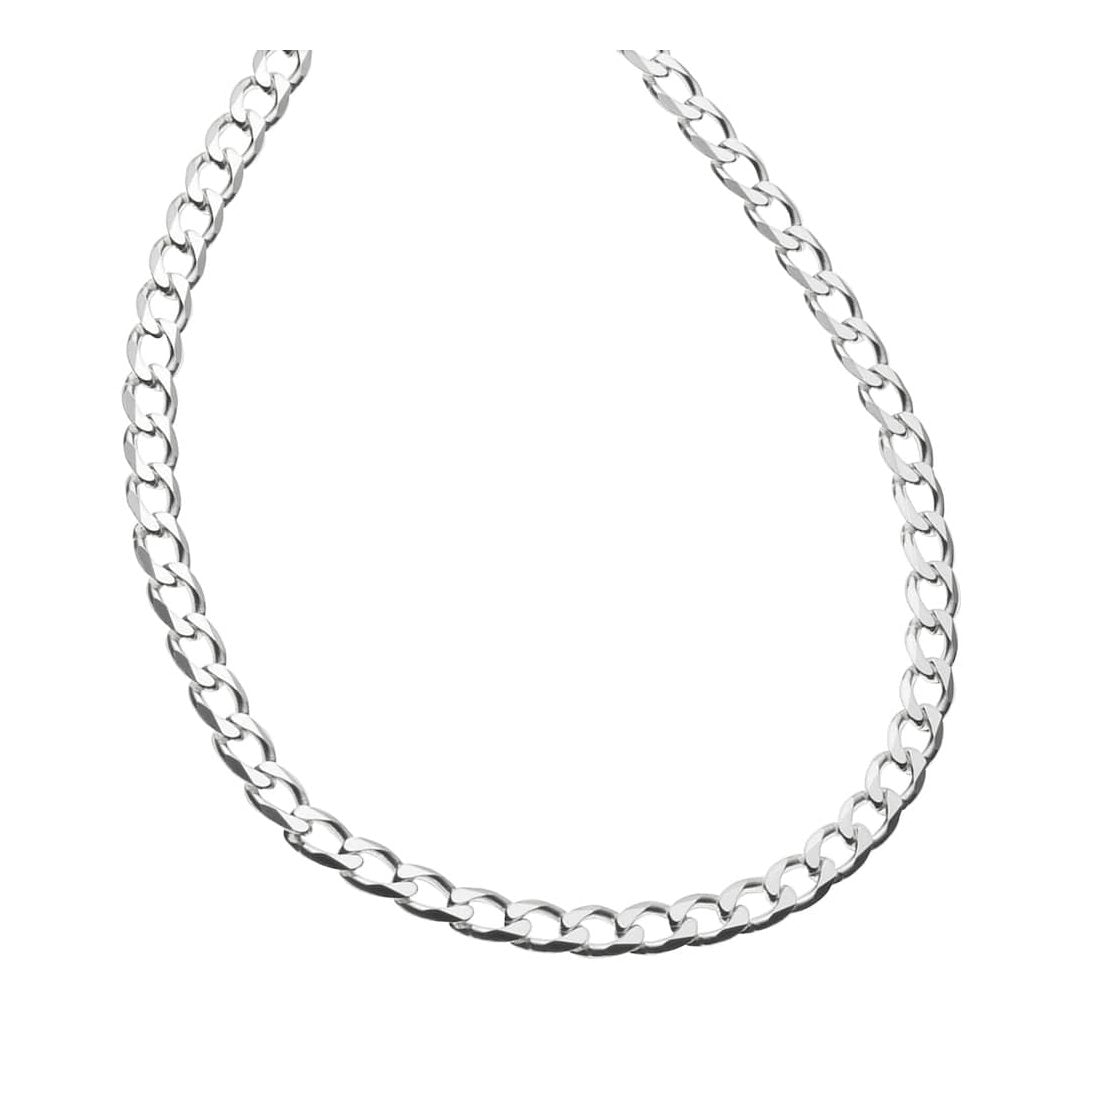 "1.3MM 030 Rhodium Plated Curb Chain .925 Sterling Silver Length 16""-22"" Inches"